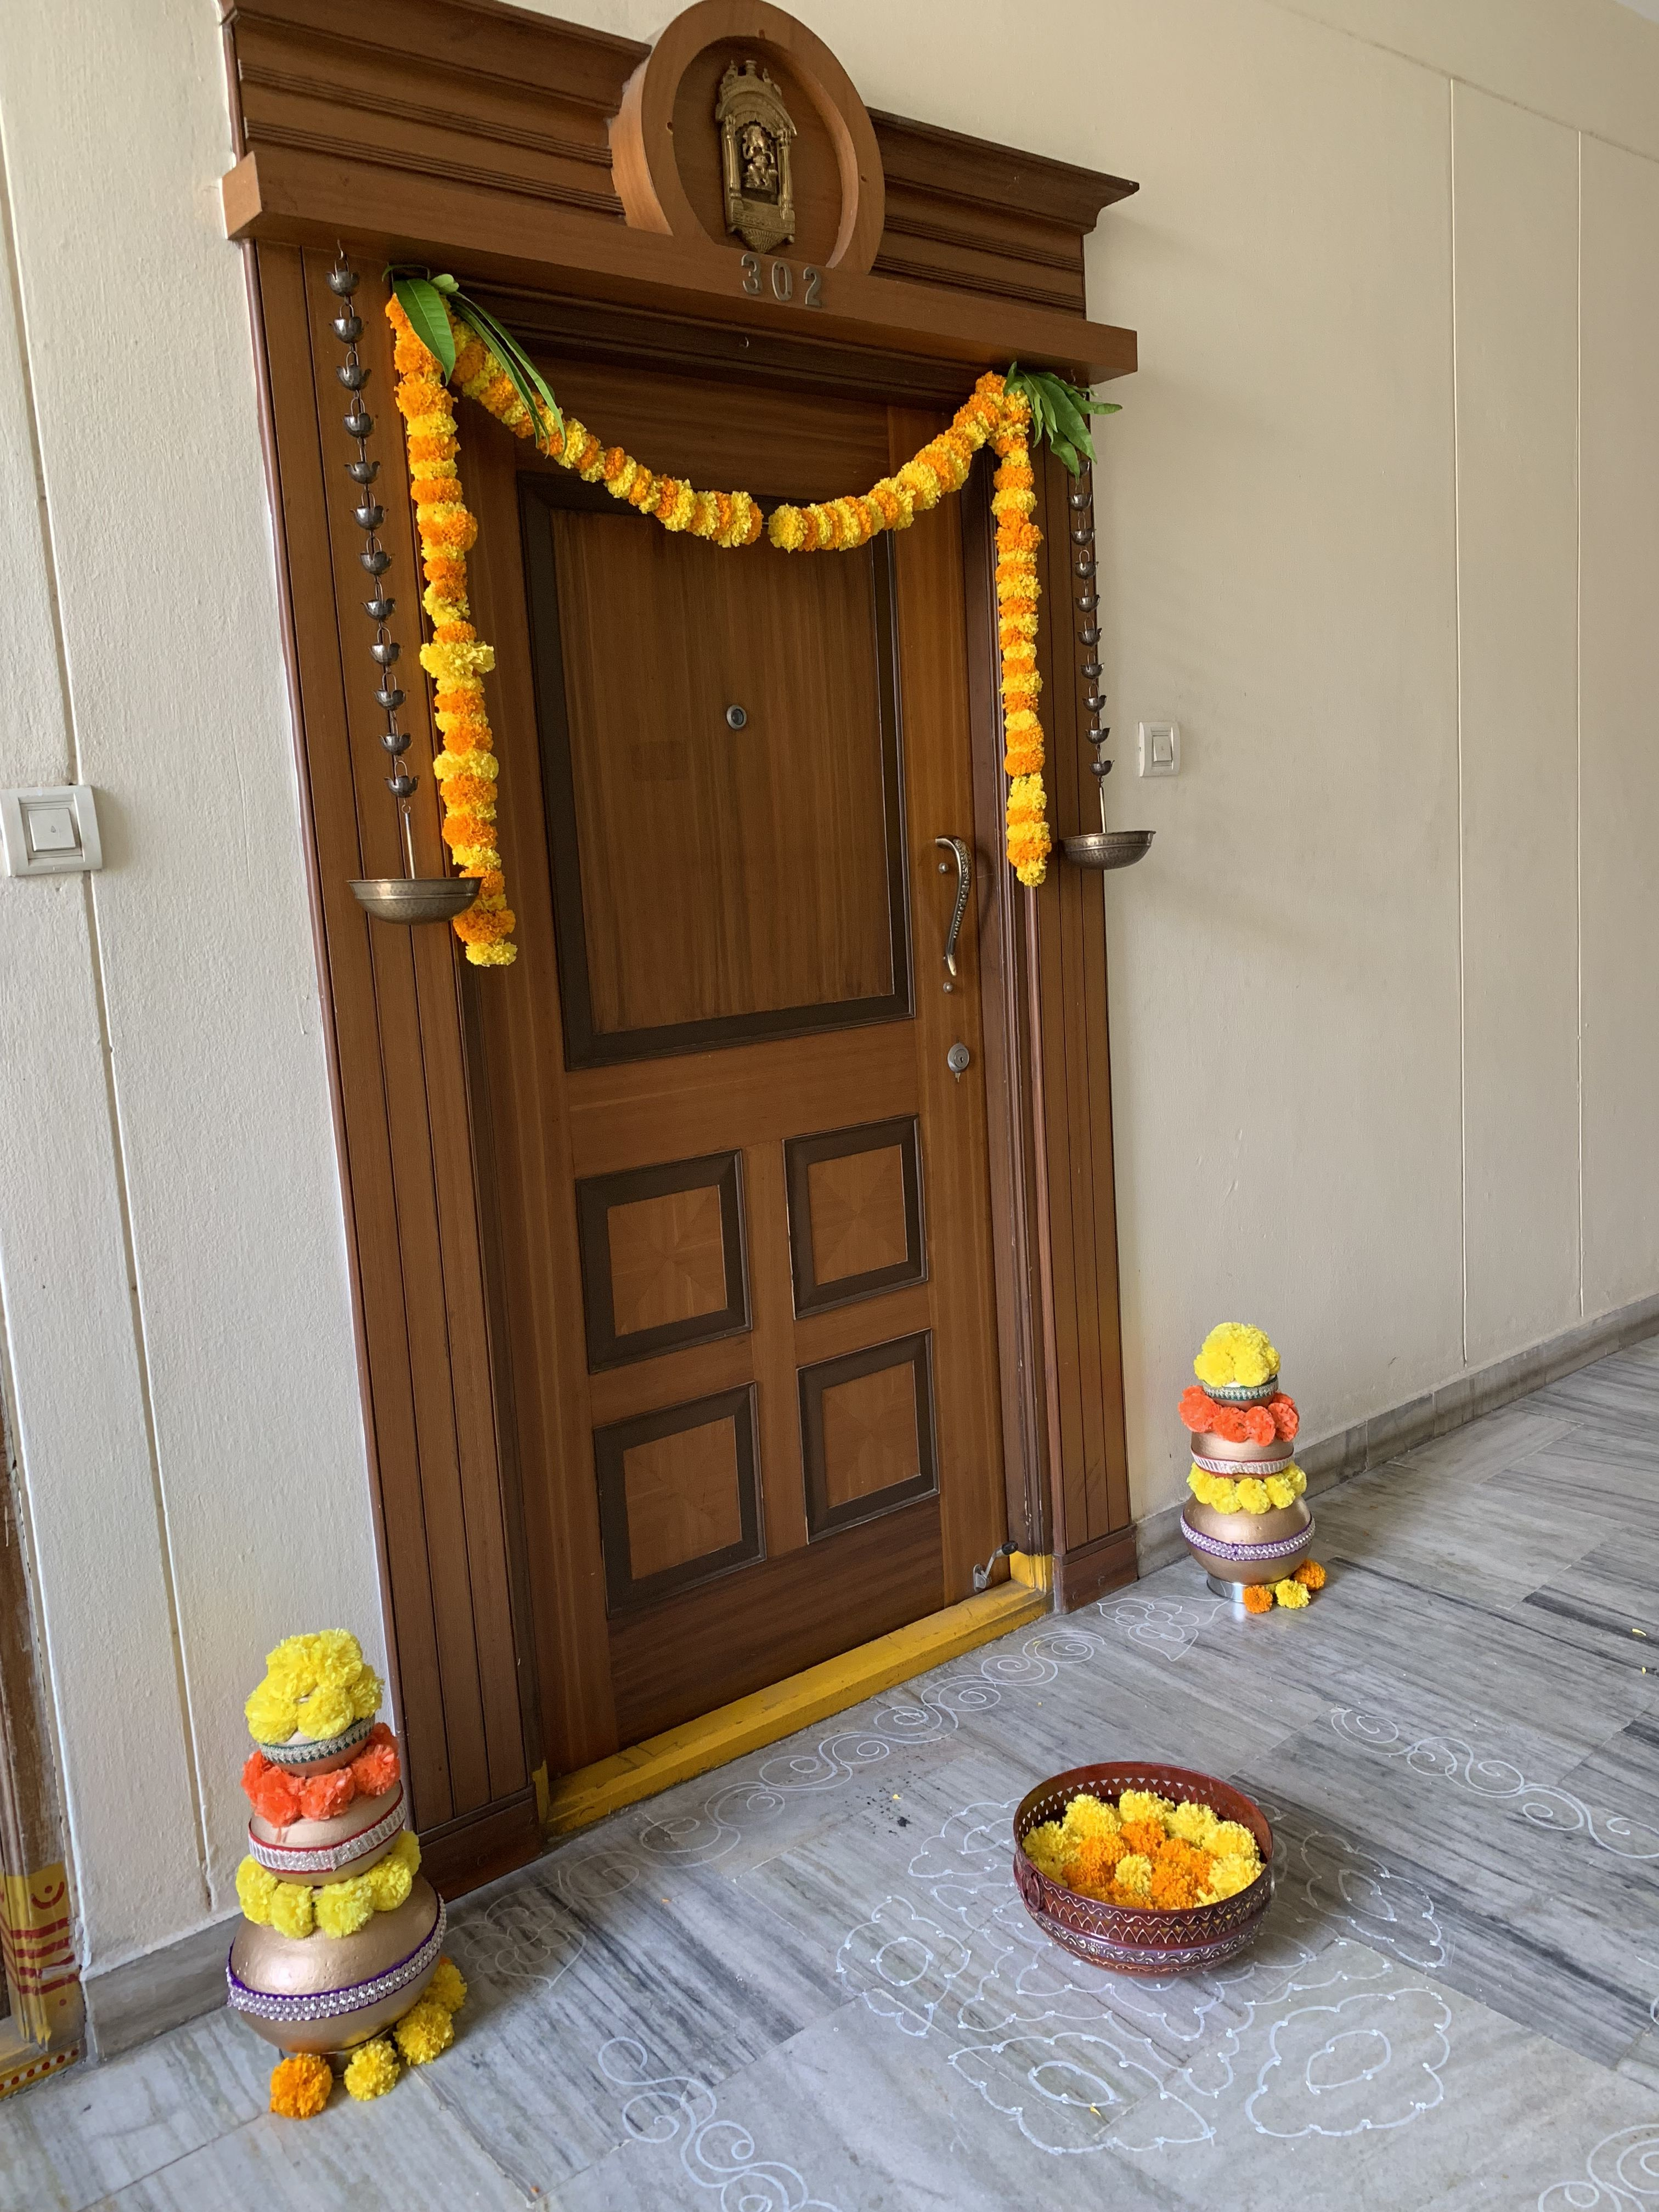 Flower Poofs Love It So Easy To Make With Tissue Paper Diwali Decorations At Home Home Entrance Decor Door Decorations